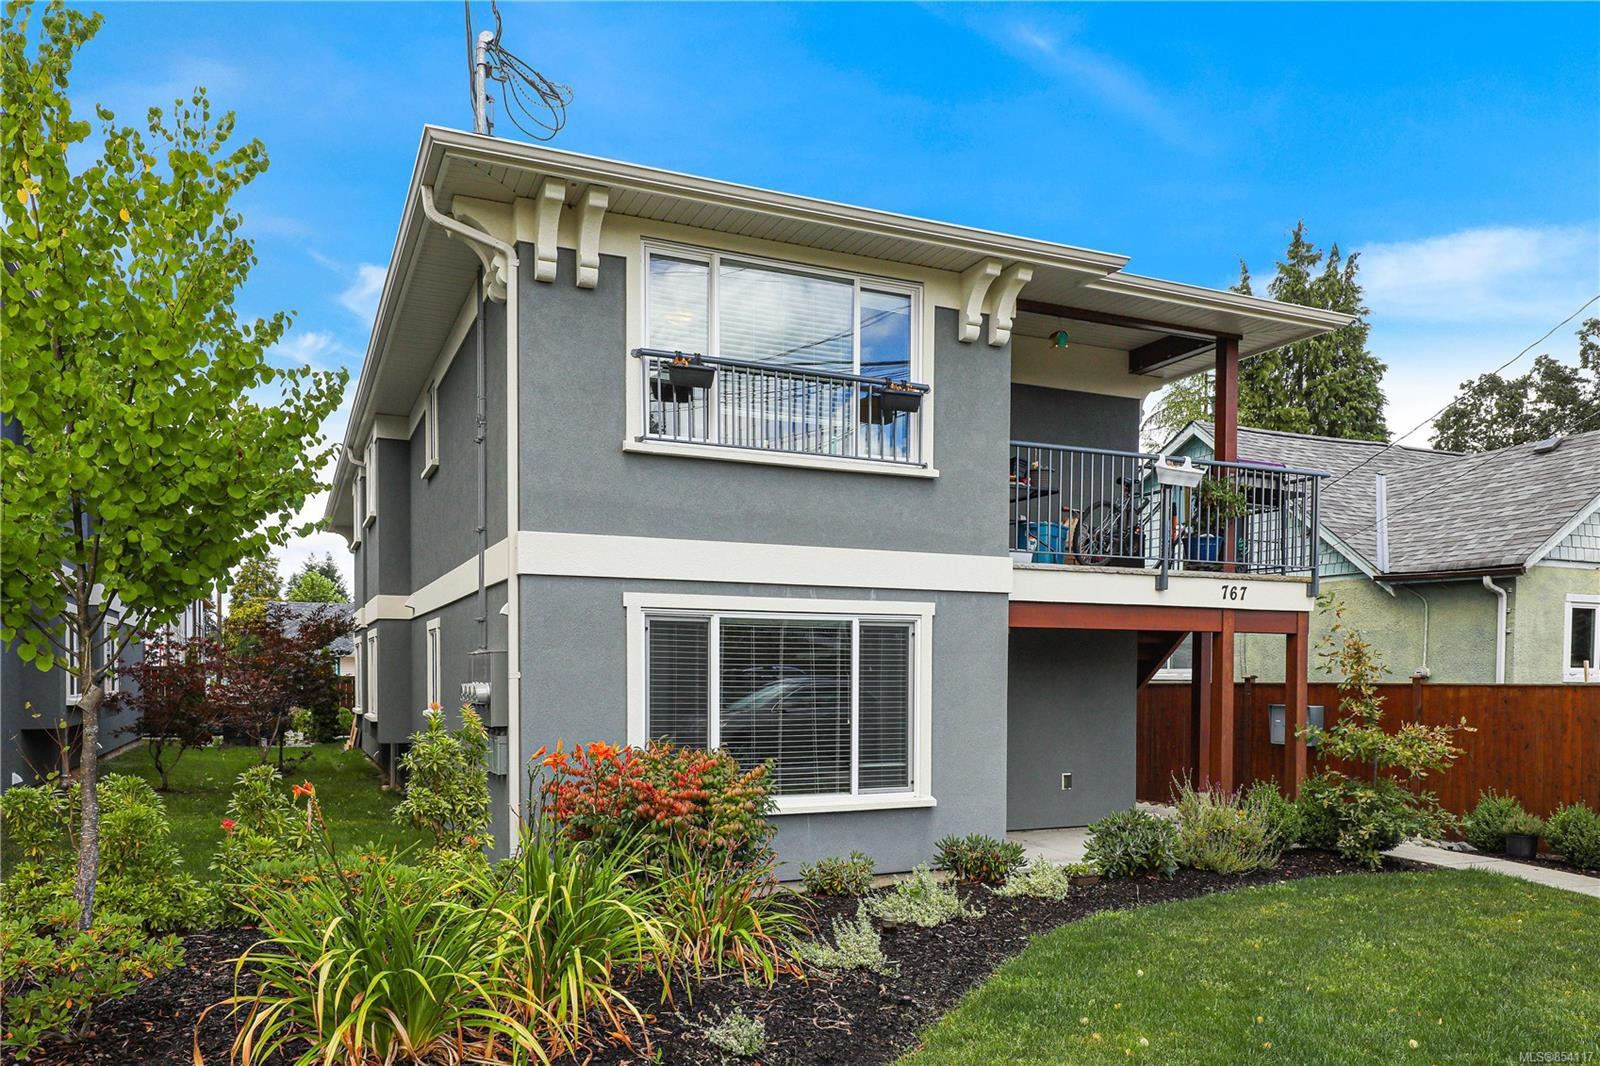 Main Photo: 767 8th St in : CV Courtenay City Multi Family for sale (Comox Valley)  : MLS®# 854117